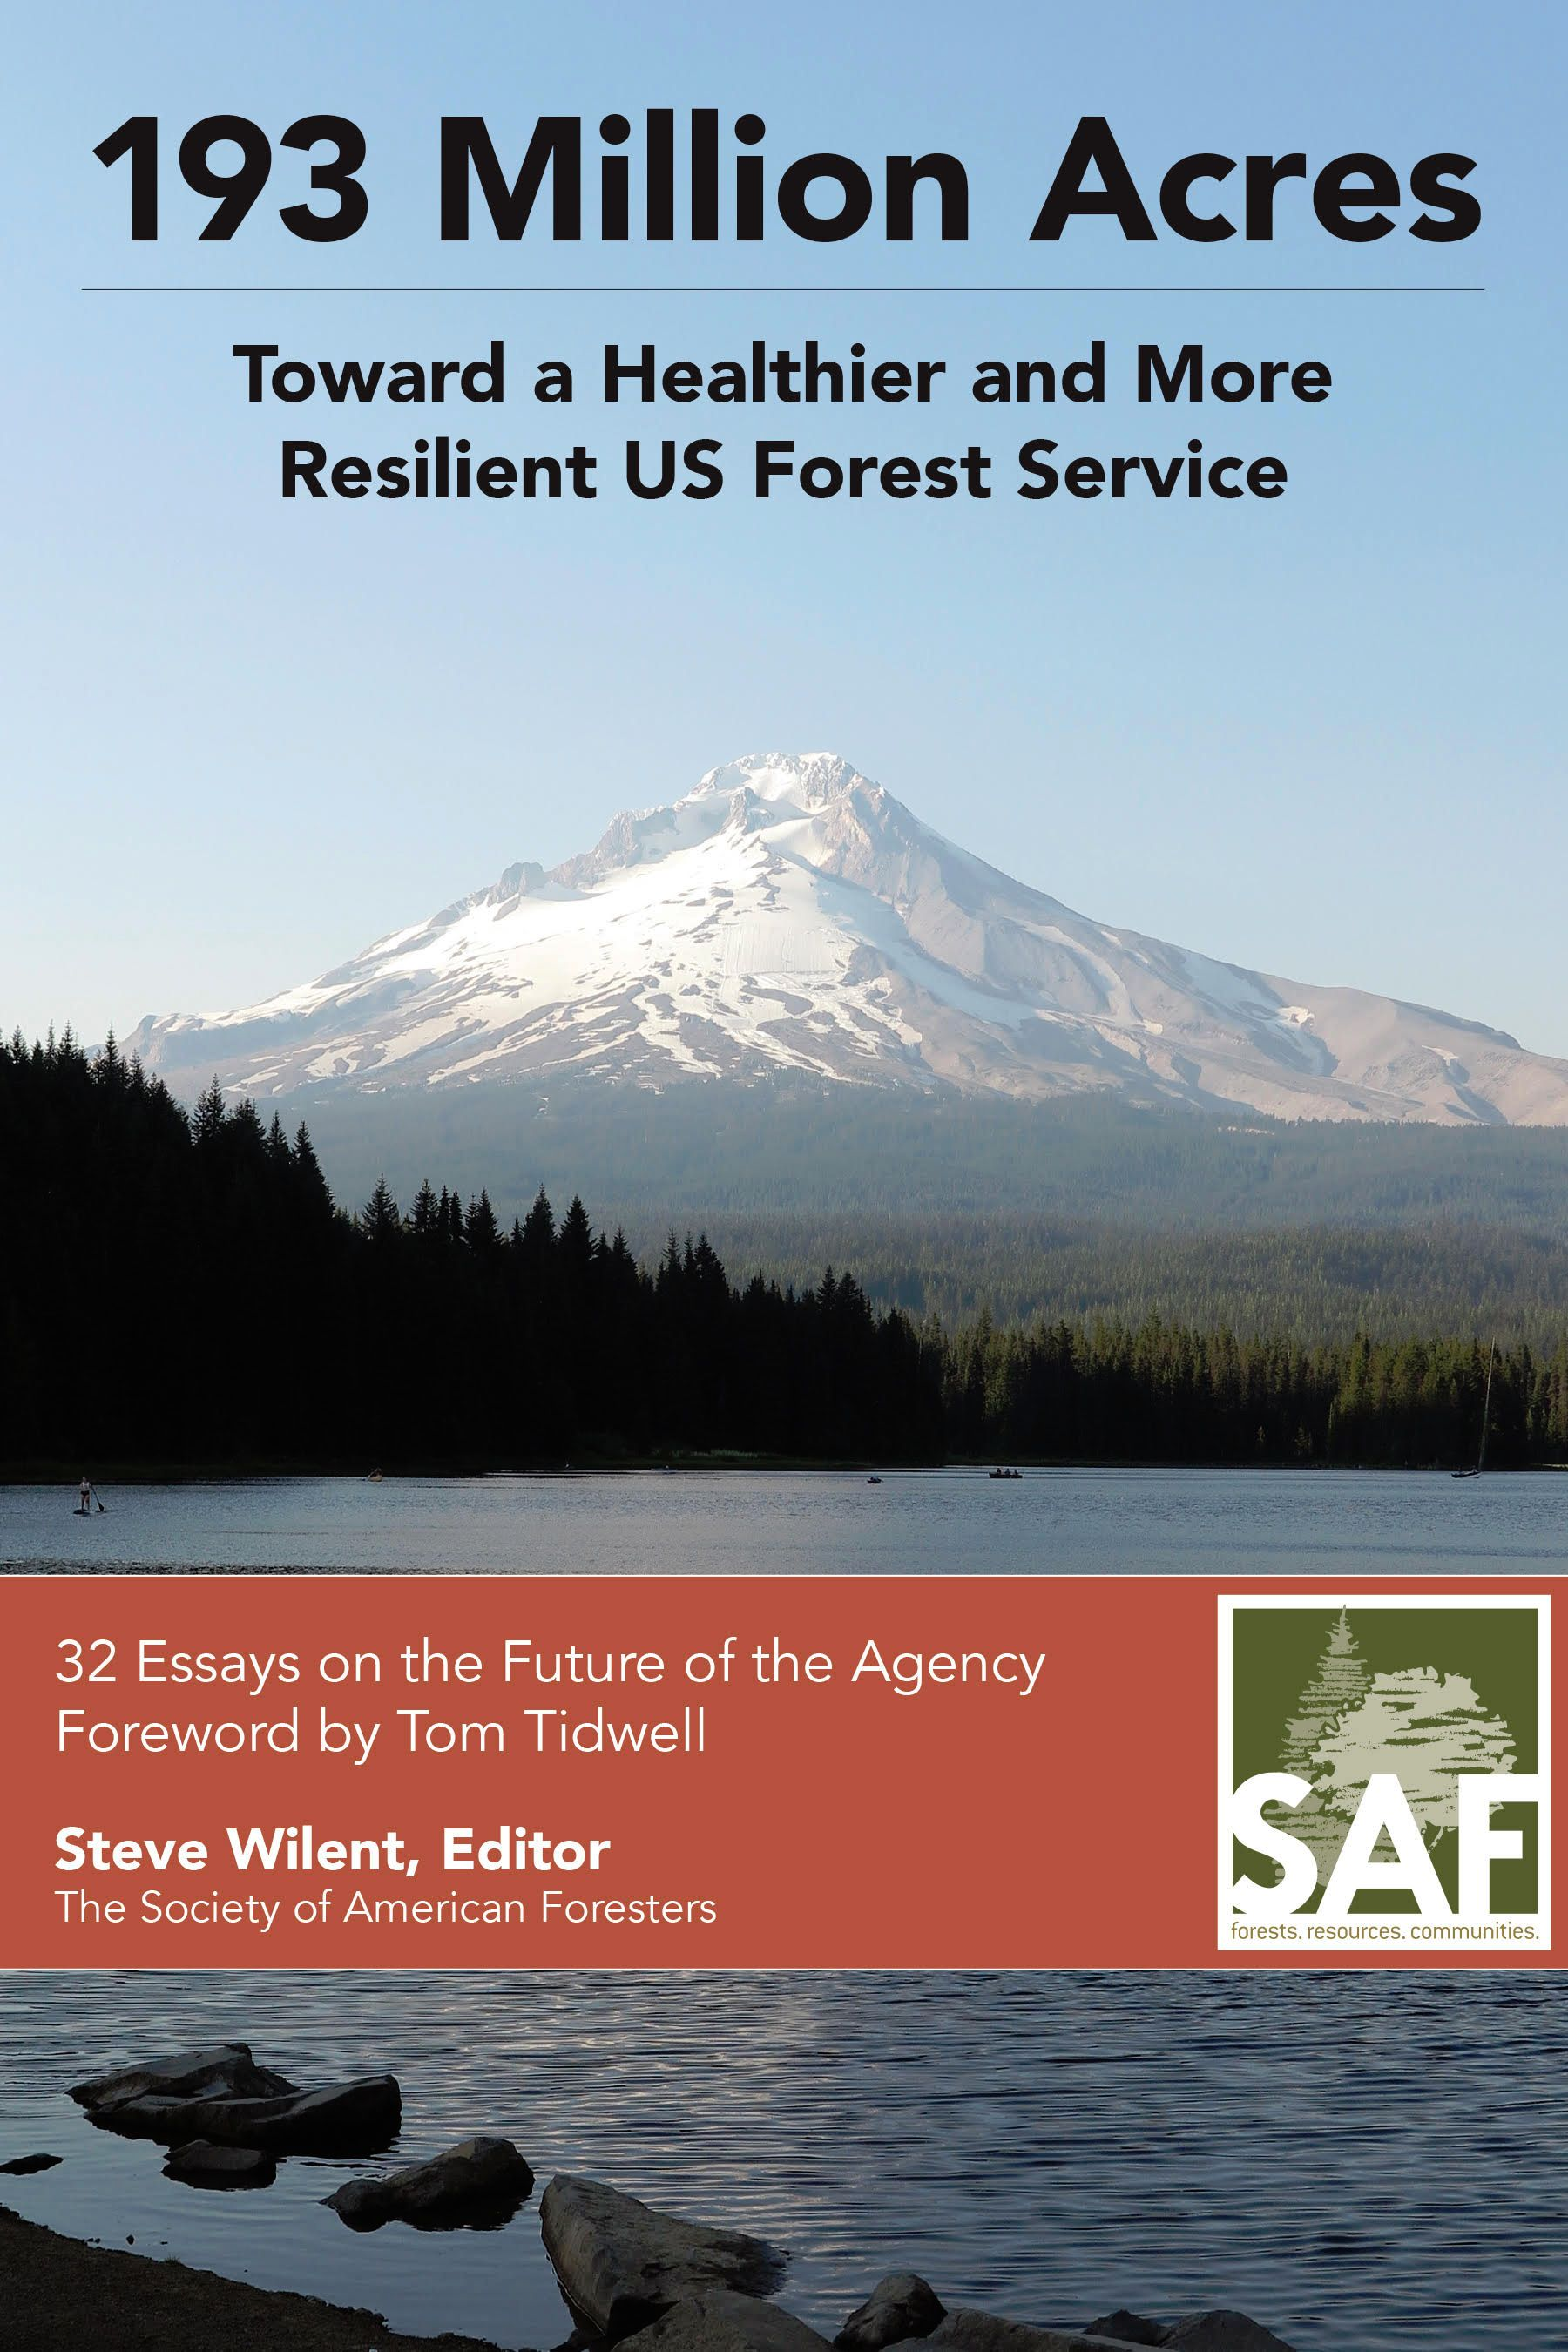 193 Million Acres: Toward a Healthier and More Resilient US